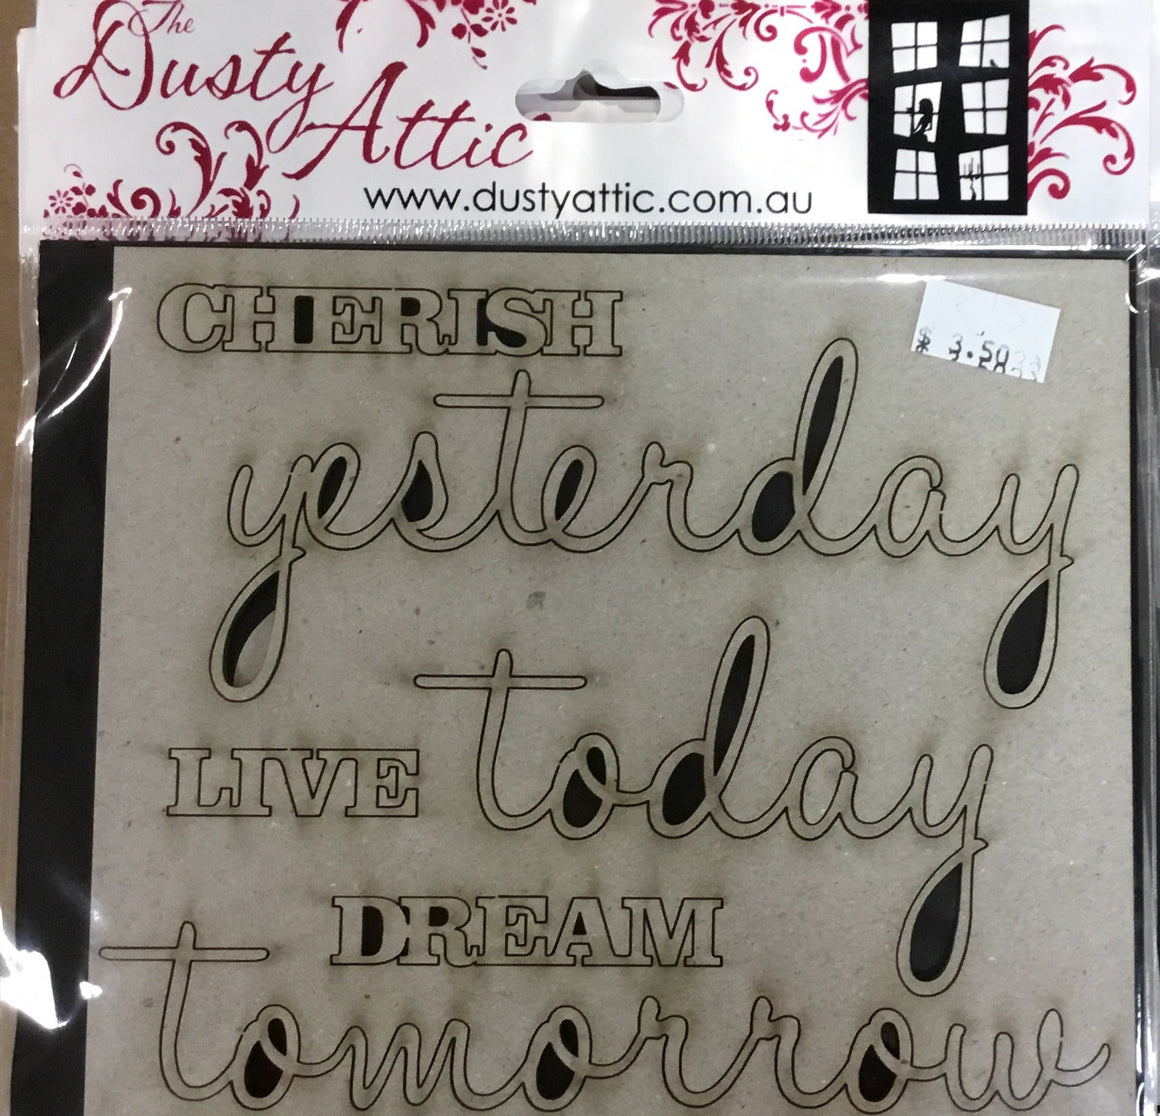 Dusty Attic Chipboard- cherish yesterday, live today, dream tomorrow